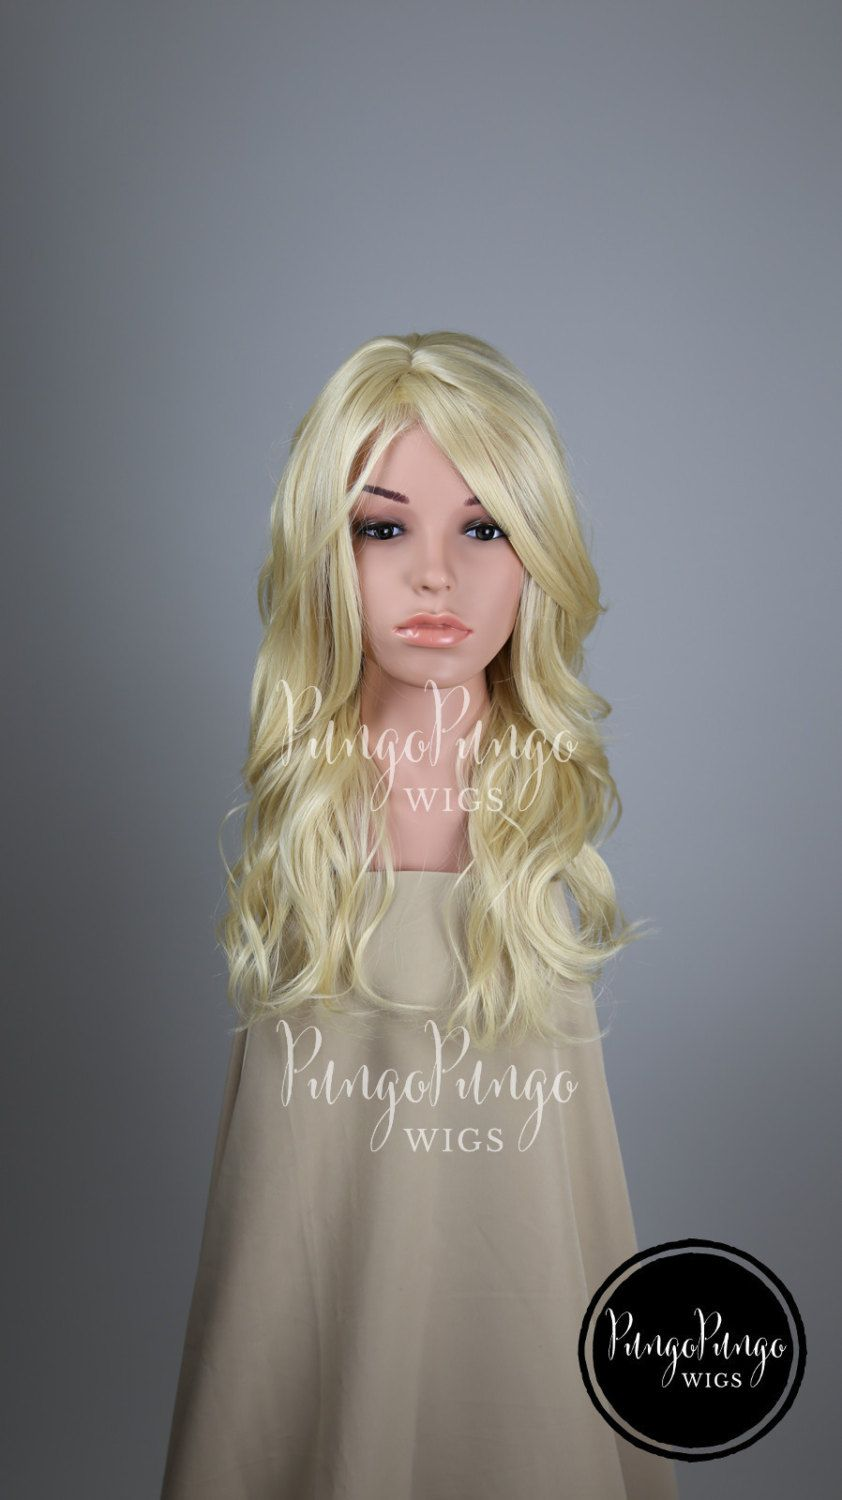 platinum blonde wig long wig bangs curly wavy fashion beauty halloween costume barbie - Halloween Costumes With Blonde Wig